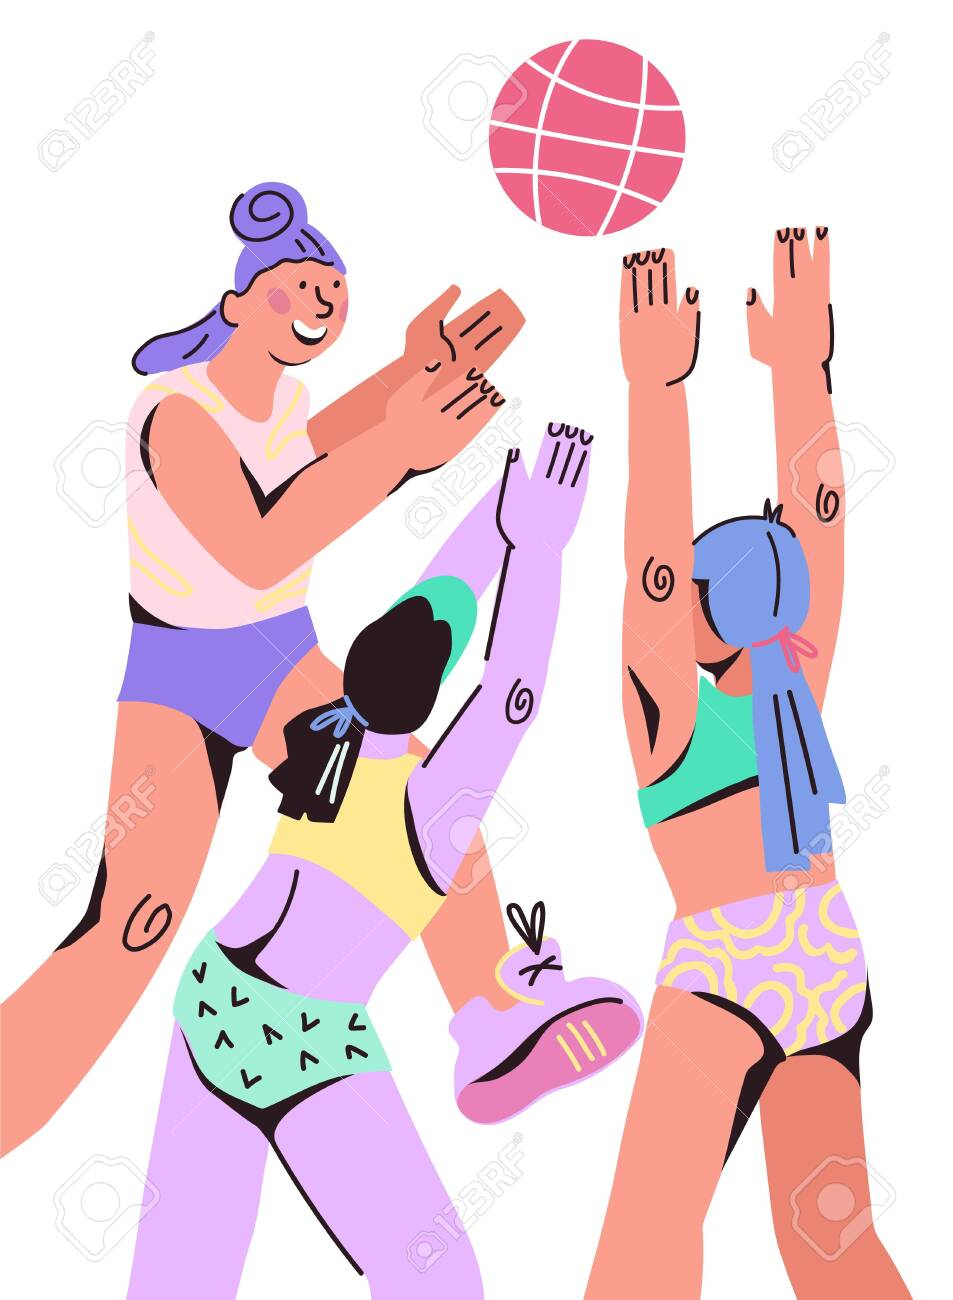 Womens Beach Volleyball Or Basketball Team Players In Trendy Royalty Free Cliparts Vectors And Stock Illustration Image 137682694